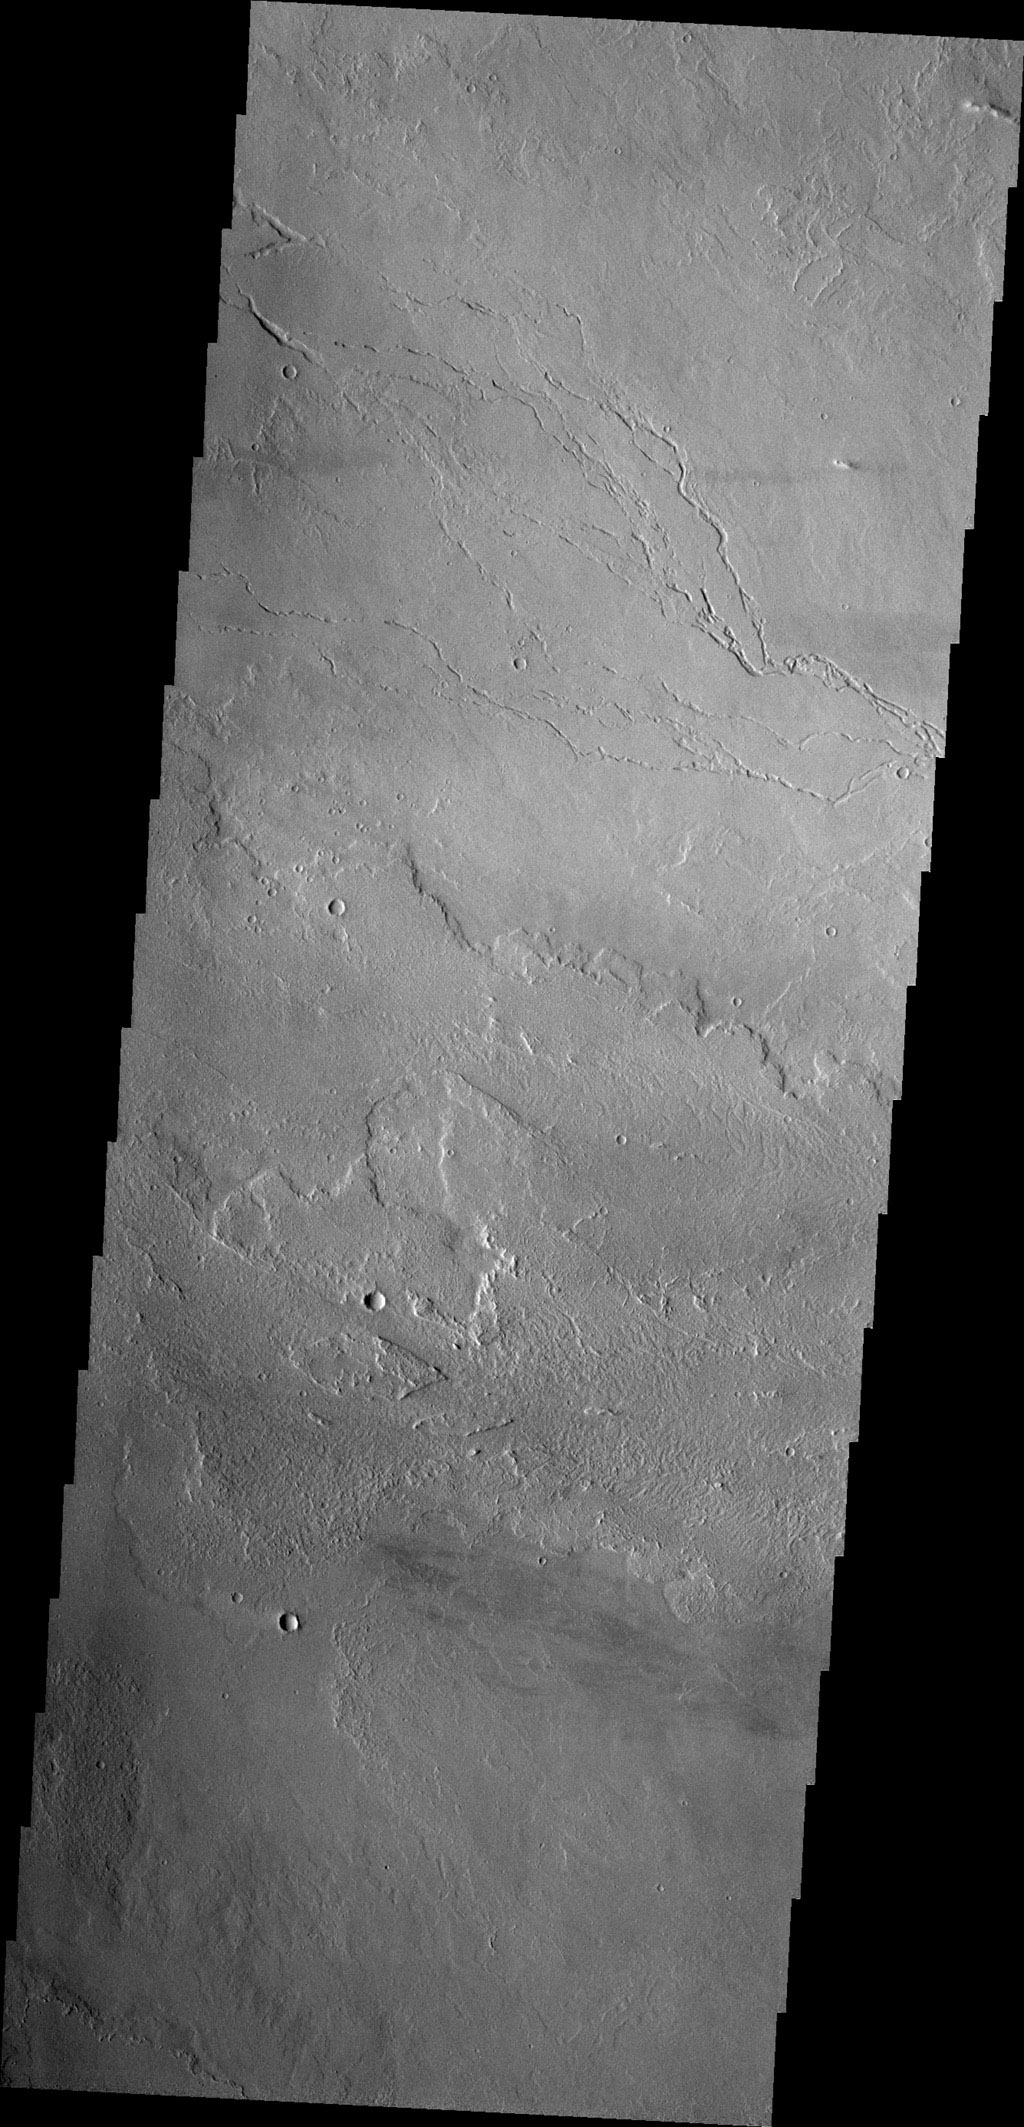 Lava channels east of Olympus Mons as seen by NASA's 2001 Mars Odyssey spacecraft.